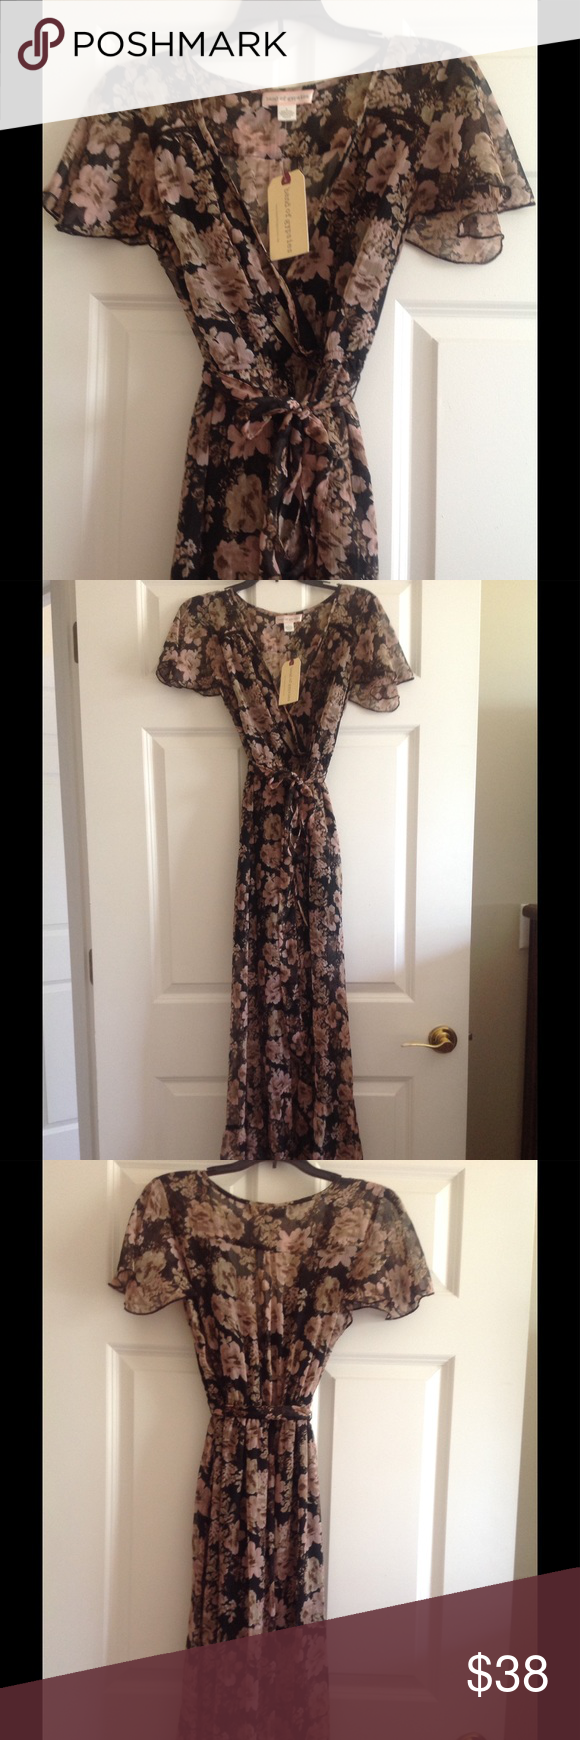 Band of gypsies maxi Flutter sleeve dress Band of Gypsies